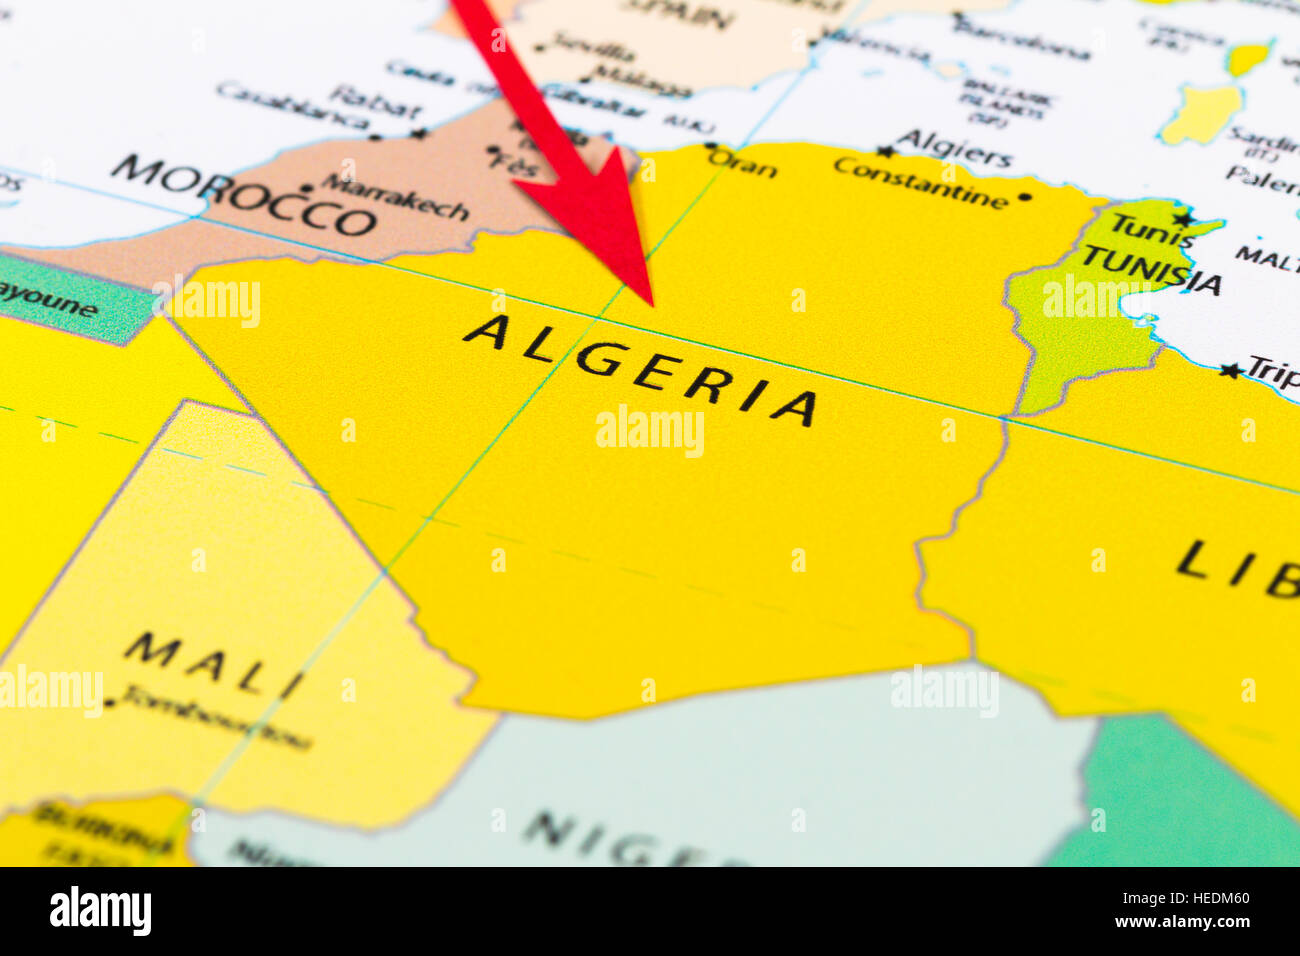 Red Arrow Pointing Algeria On The Map Of Africa Continent Stock